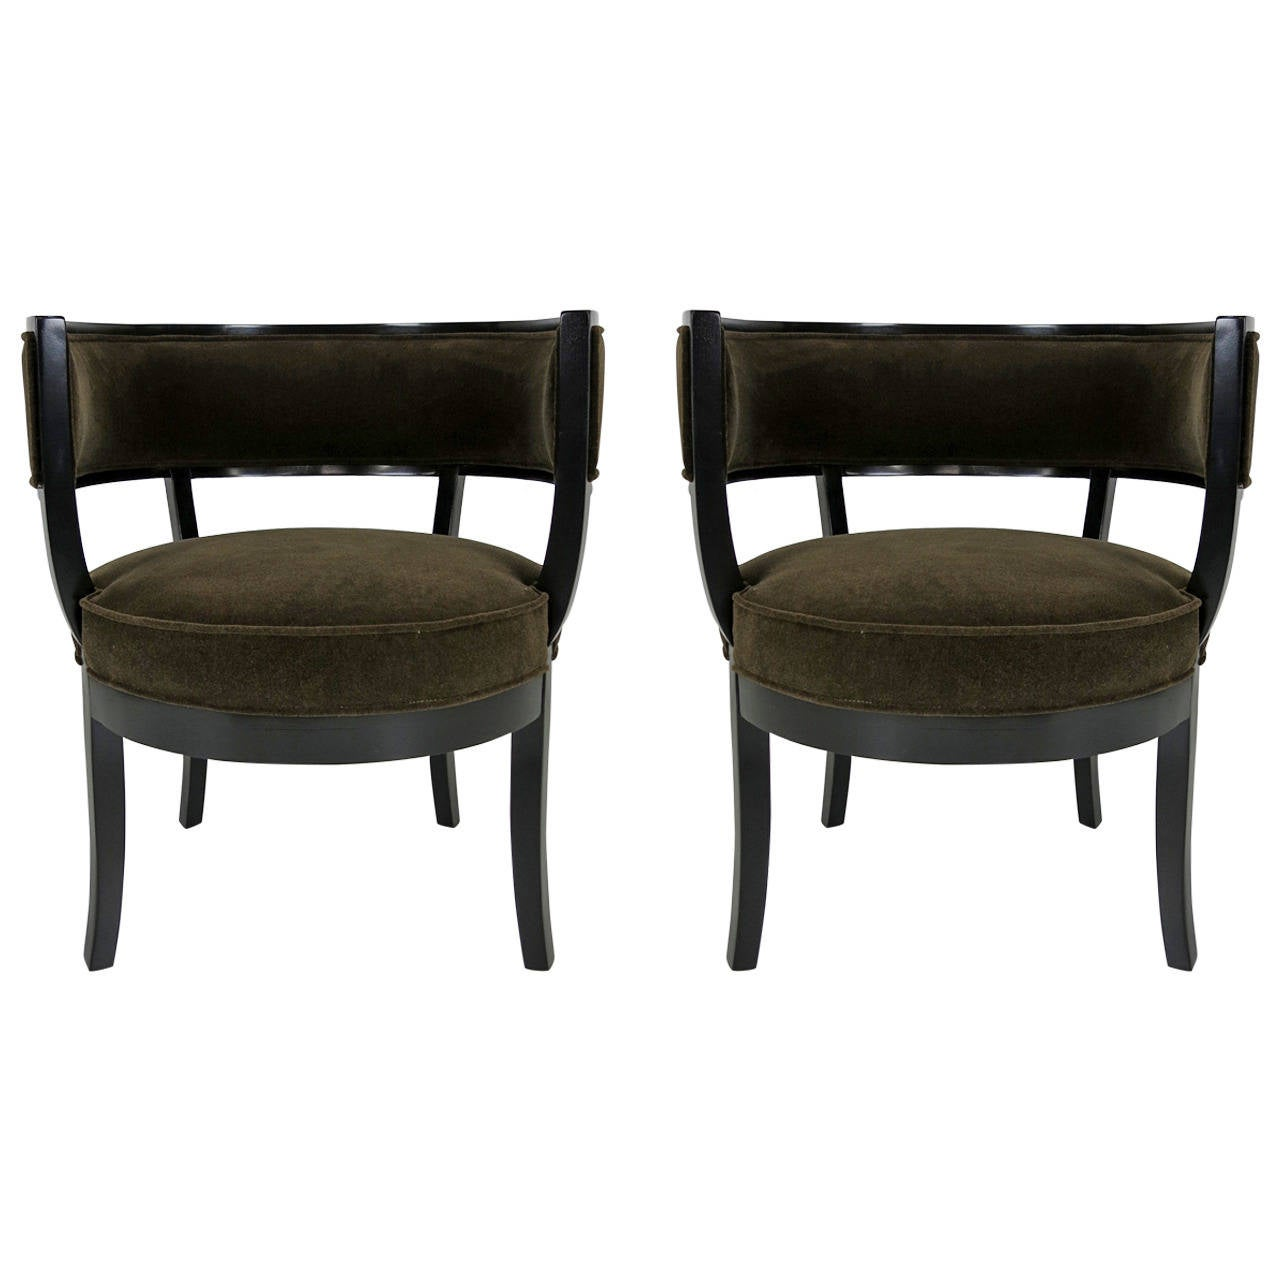 Pair of 1940s Barrel Chairs